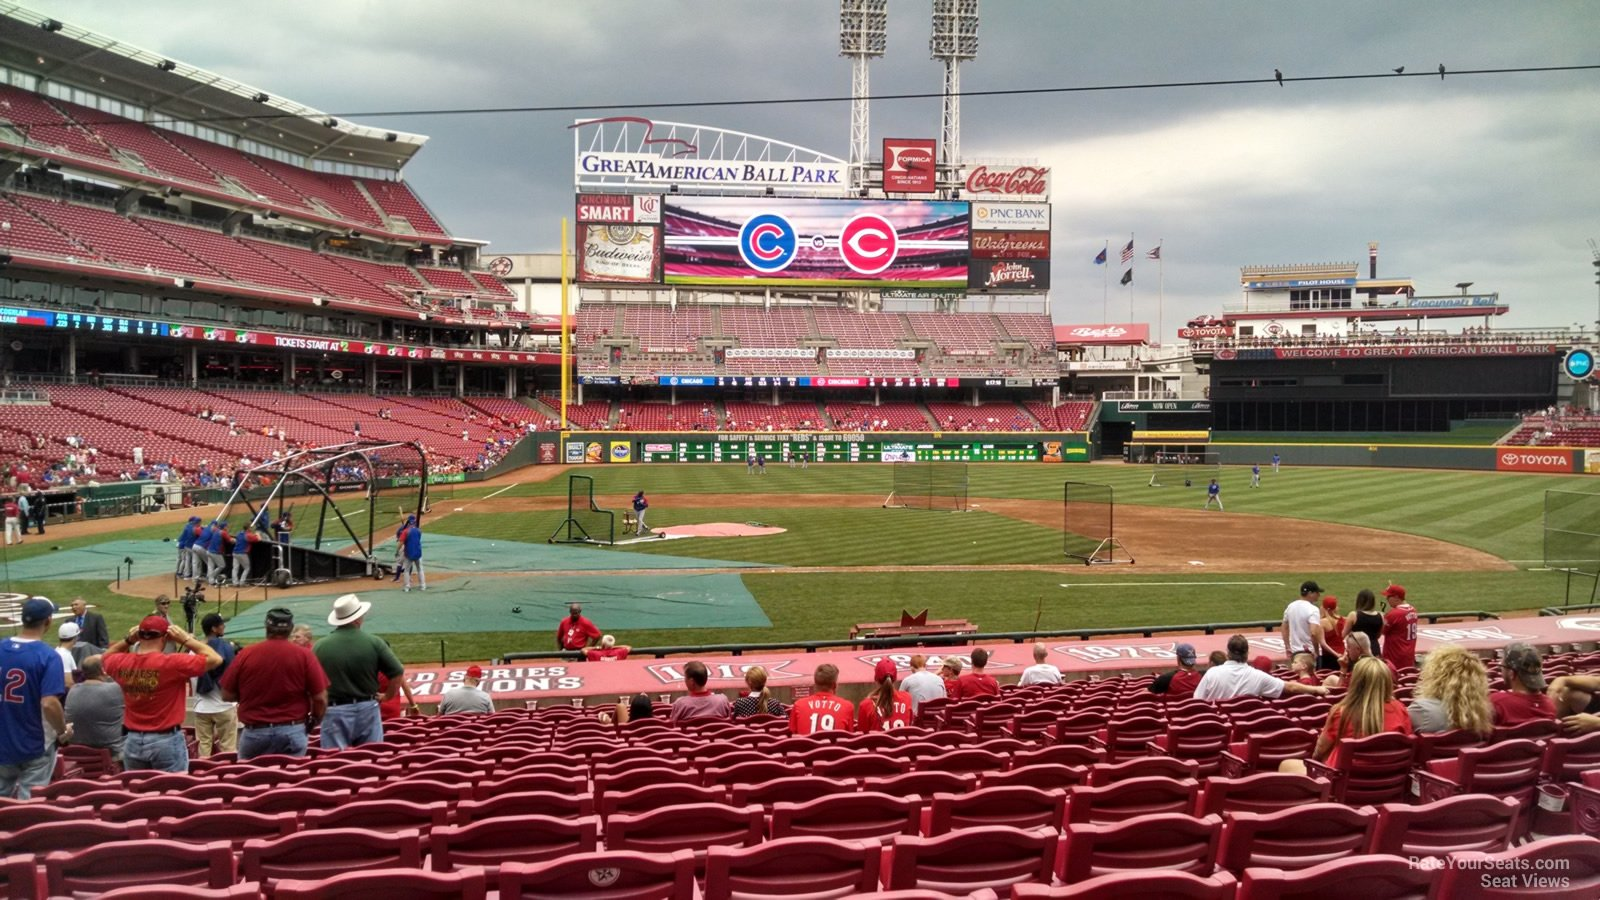 What Sections Are In The Shade At Great American Ball Park